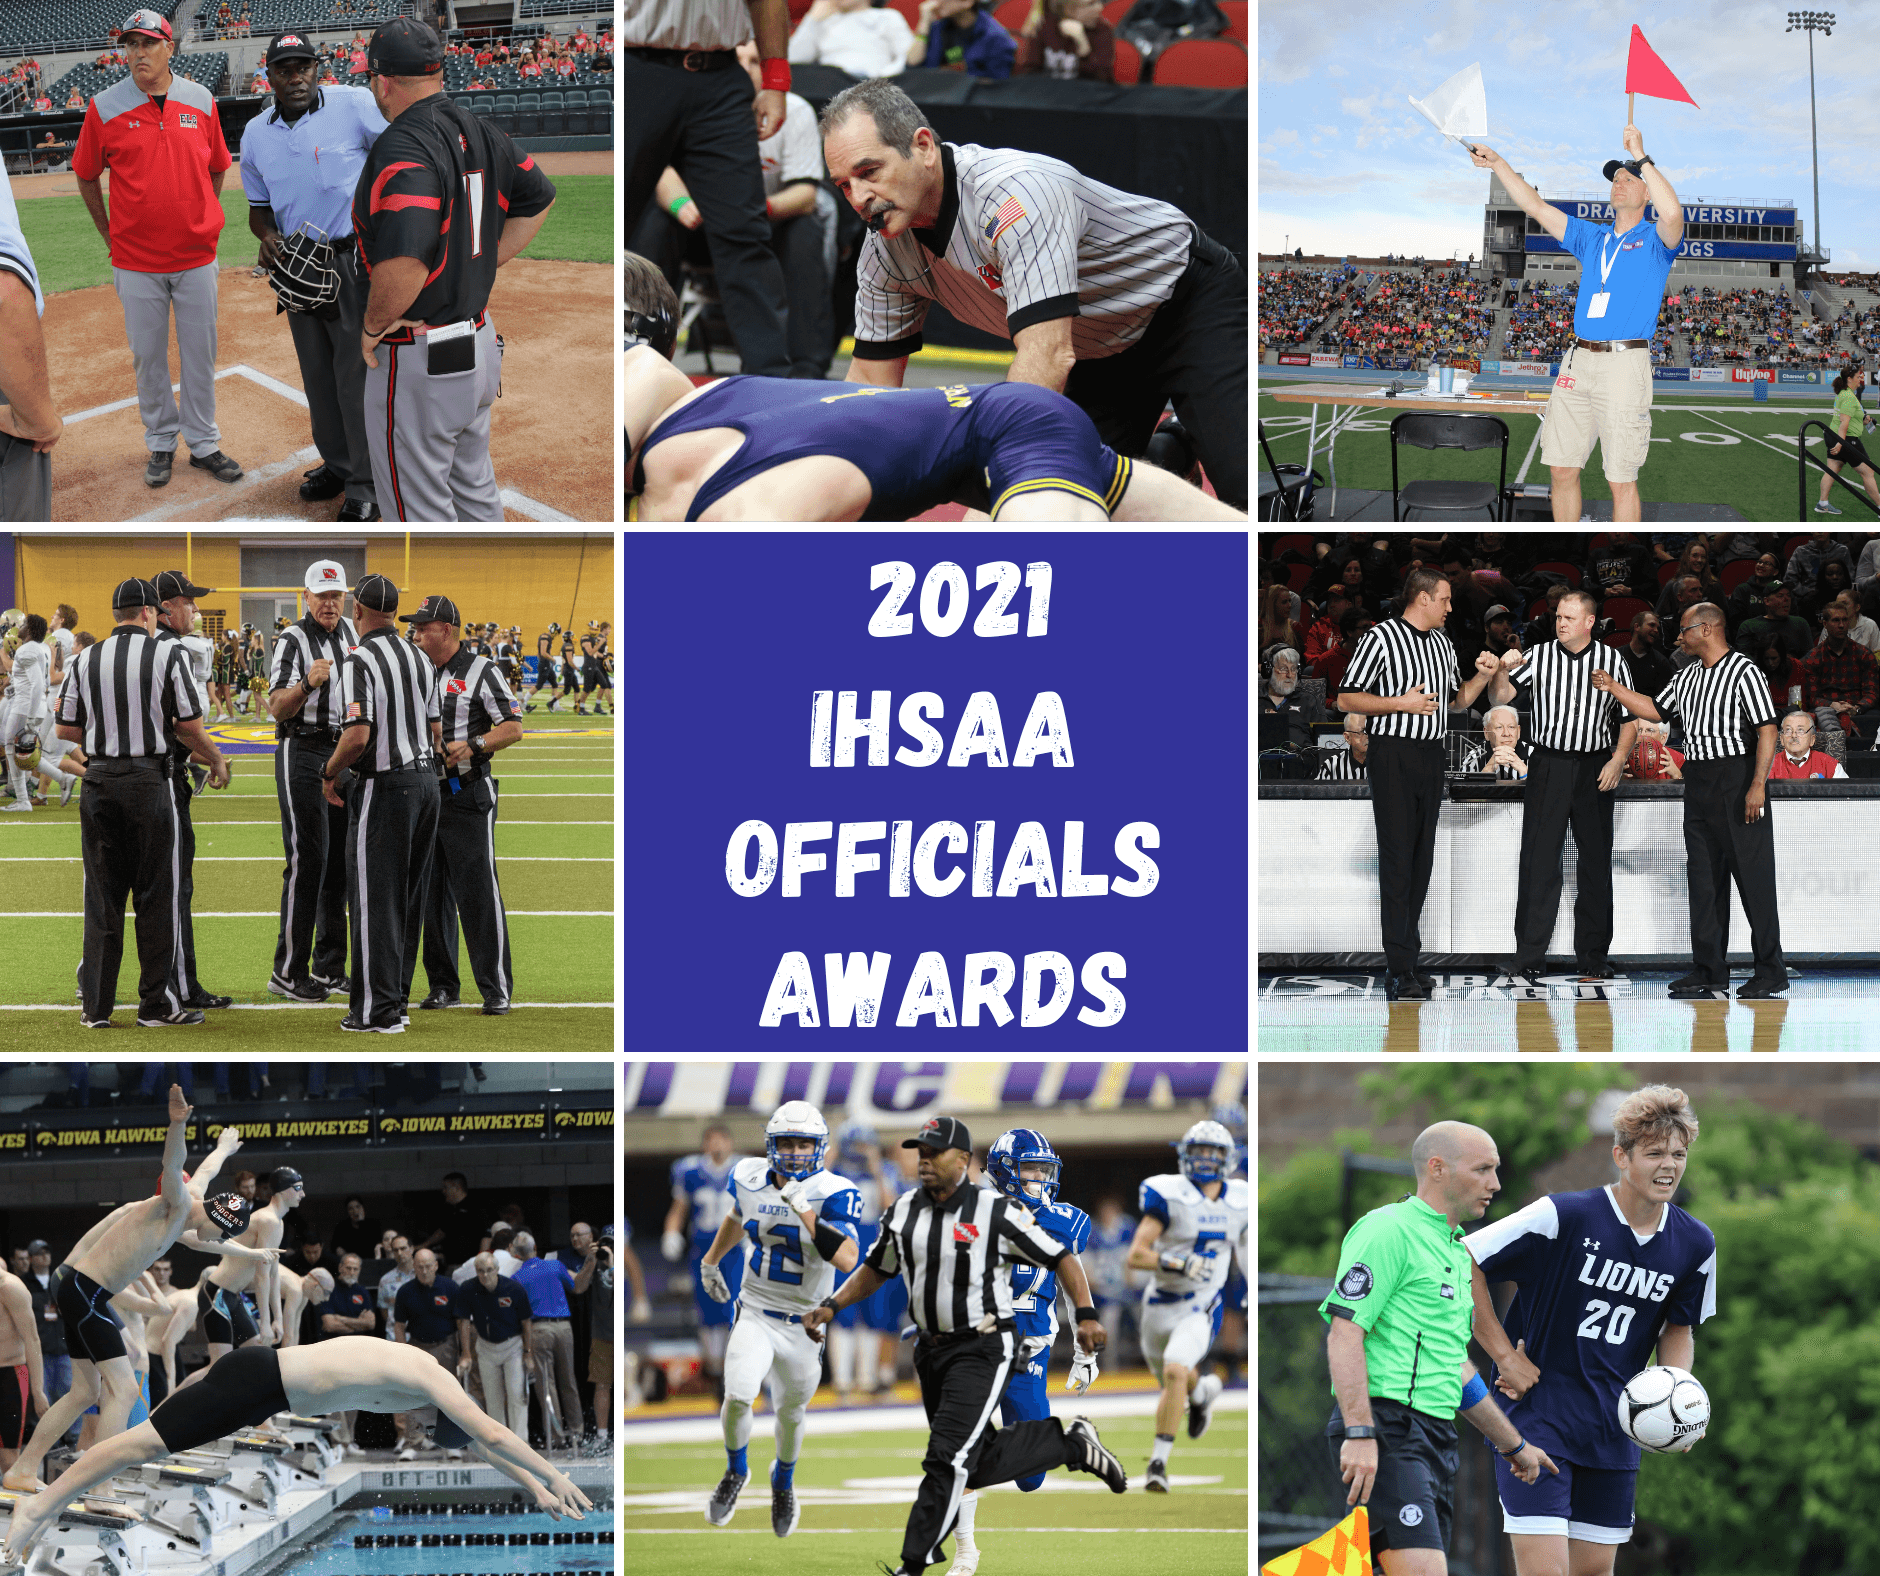 Officials: 2021 Awards & Recognition